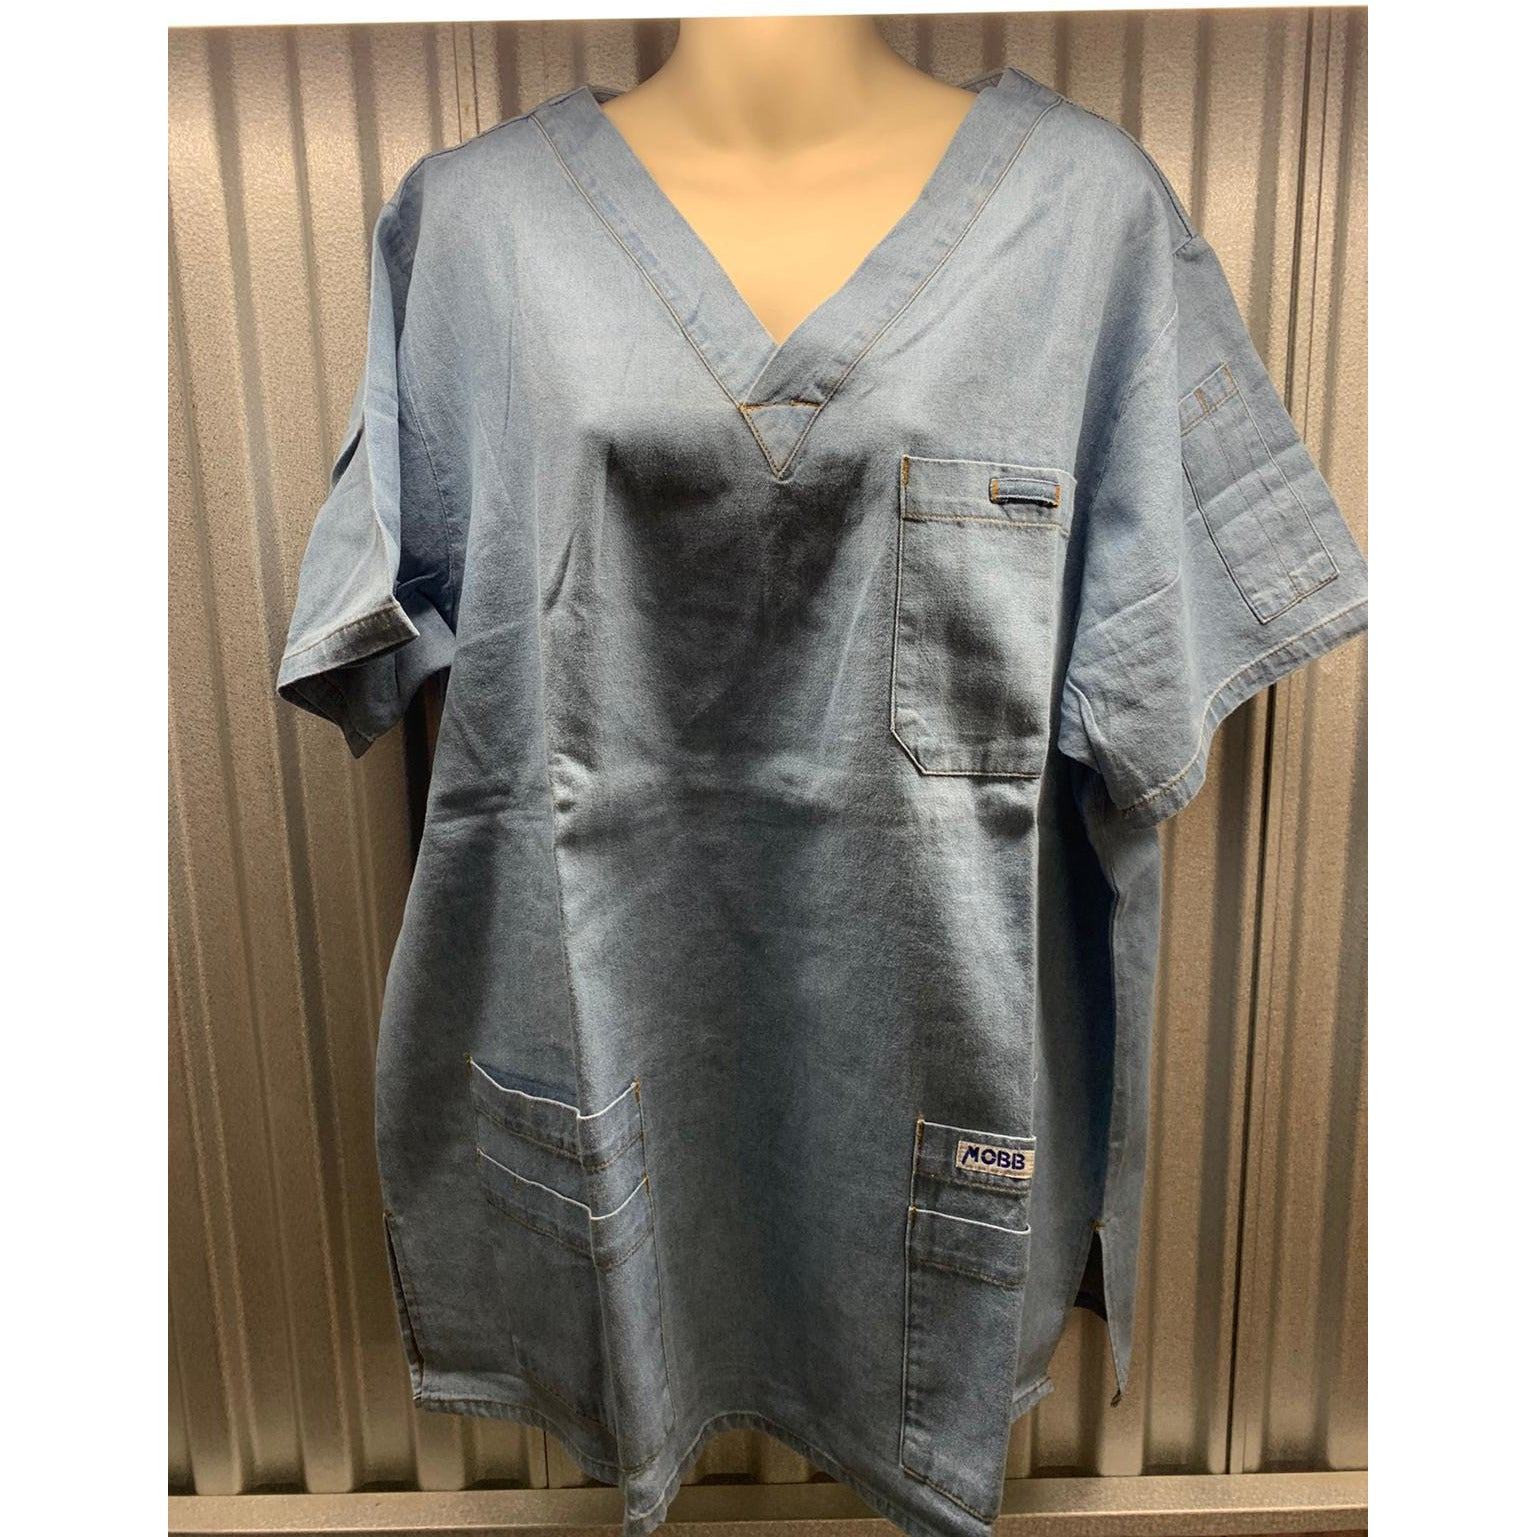 MOBB V-Neck Print Scrub Top with 5 pockets (Big FIT)  *CLEARANCE*  320T SALE